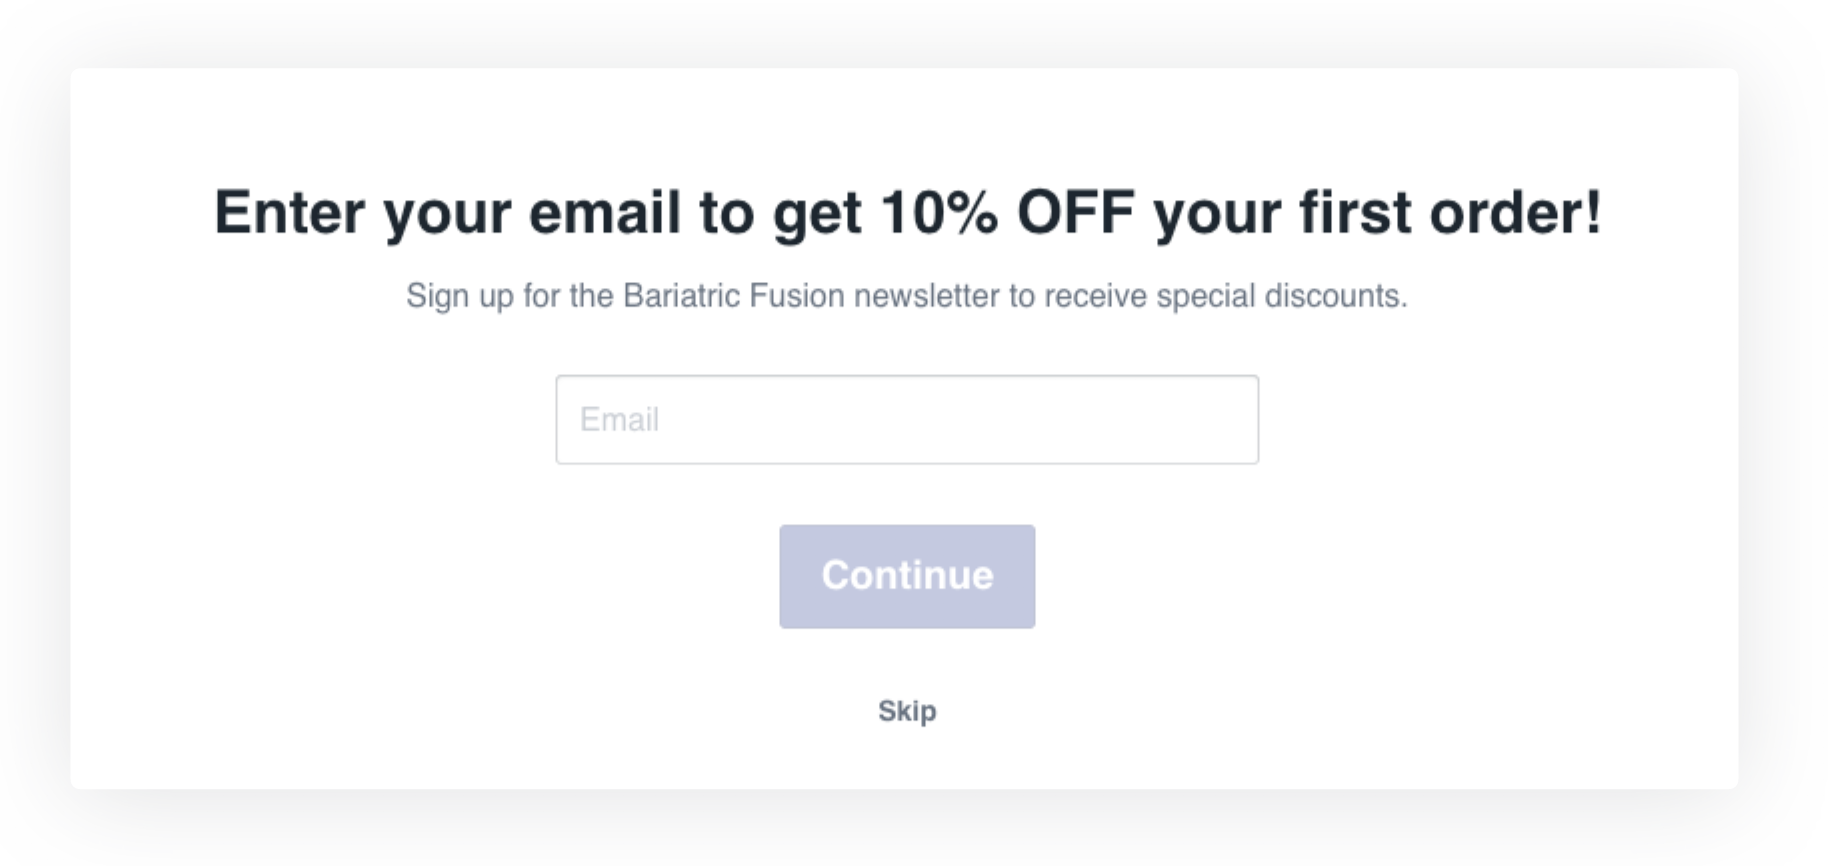 Use Shoppable Quizzes for email, Facebook Messenger, and SMS opt-ins